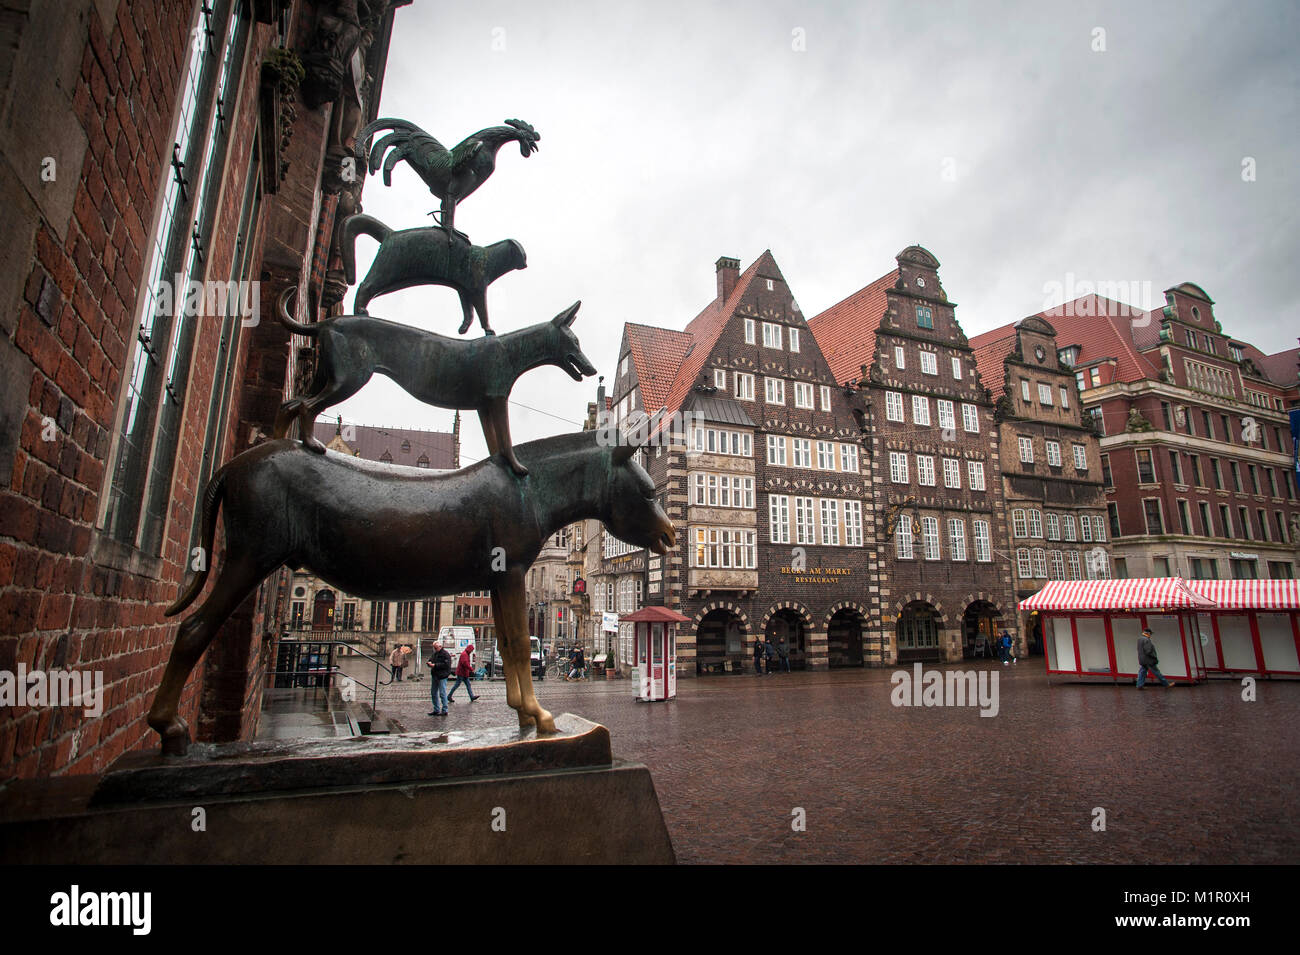 A bronze statue by Gerhard Marcks depicting the Bremen Town Musicians located just off the market square in Bremen, - Stock Image